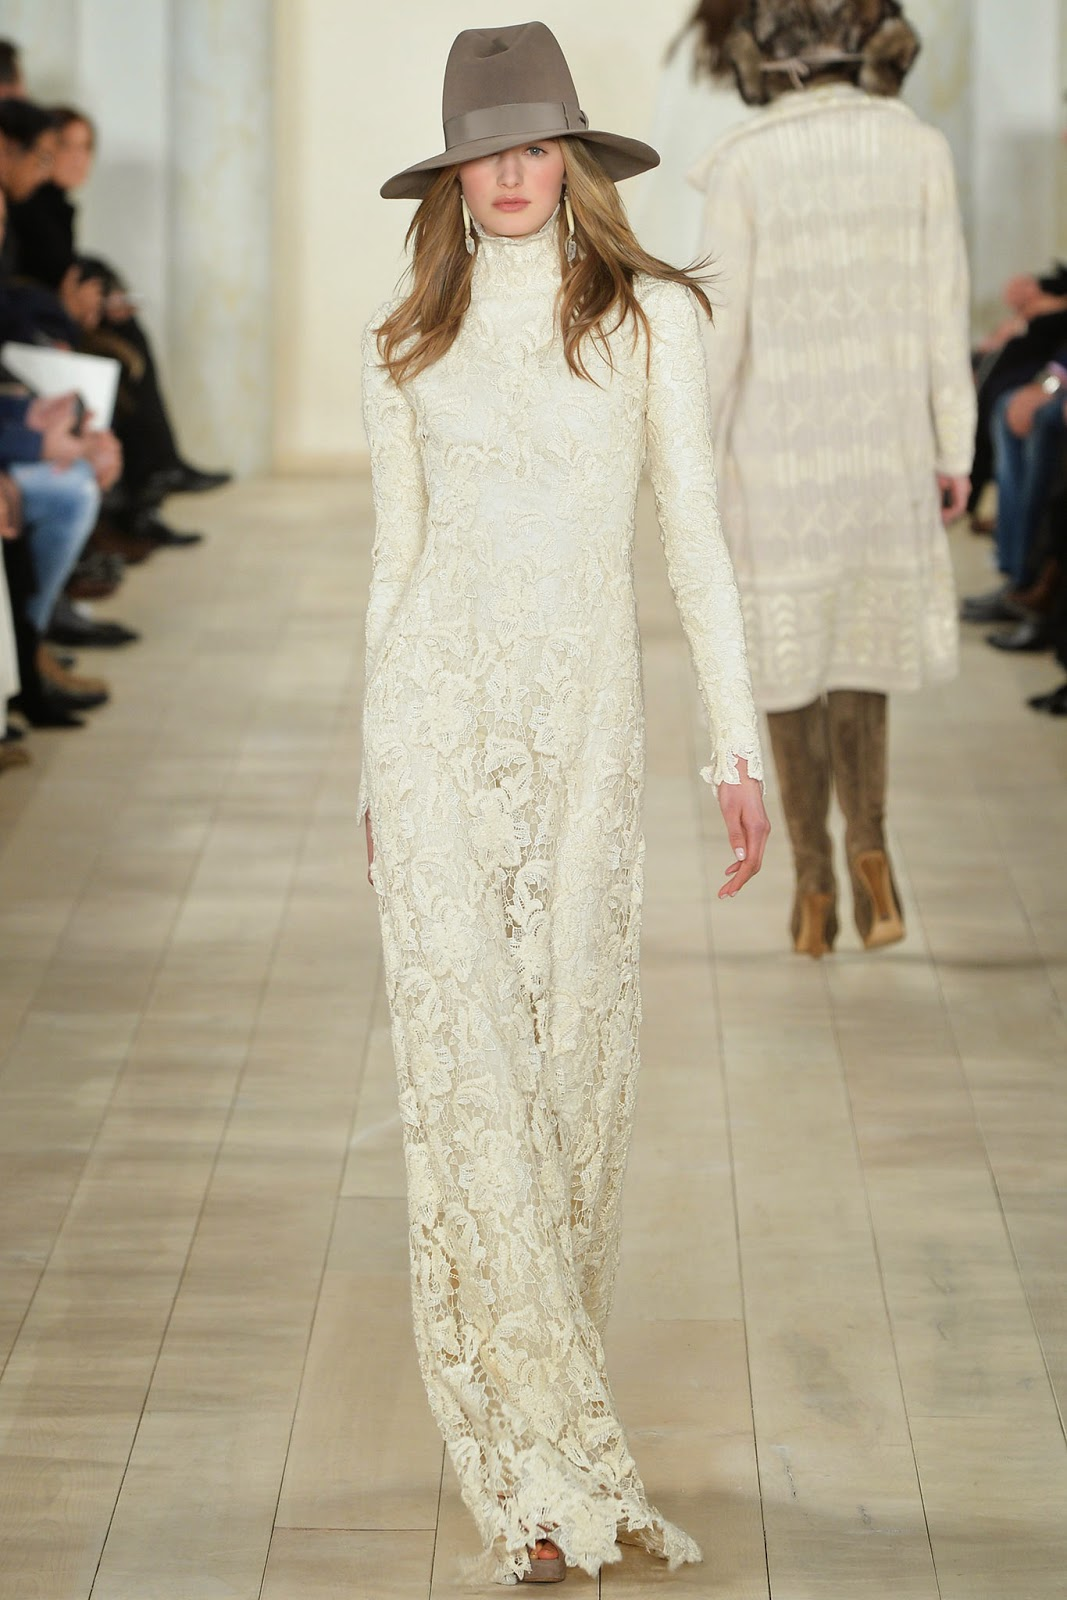 Well I Was Very Pleased To See Ralph Lauren Has Taken My Advice This Beauty From His 2017 Collection Last Week Em All